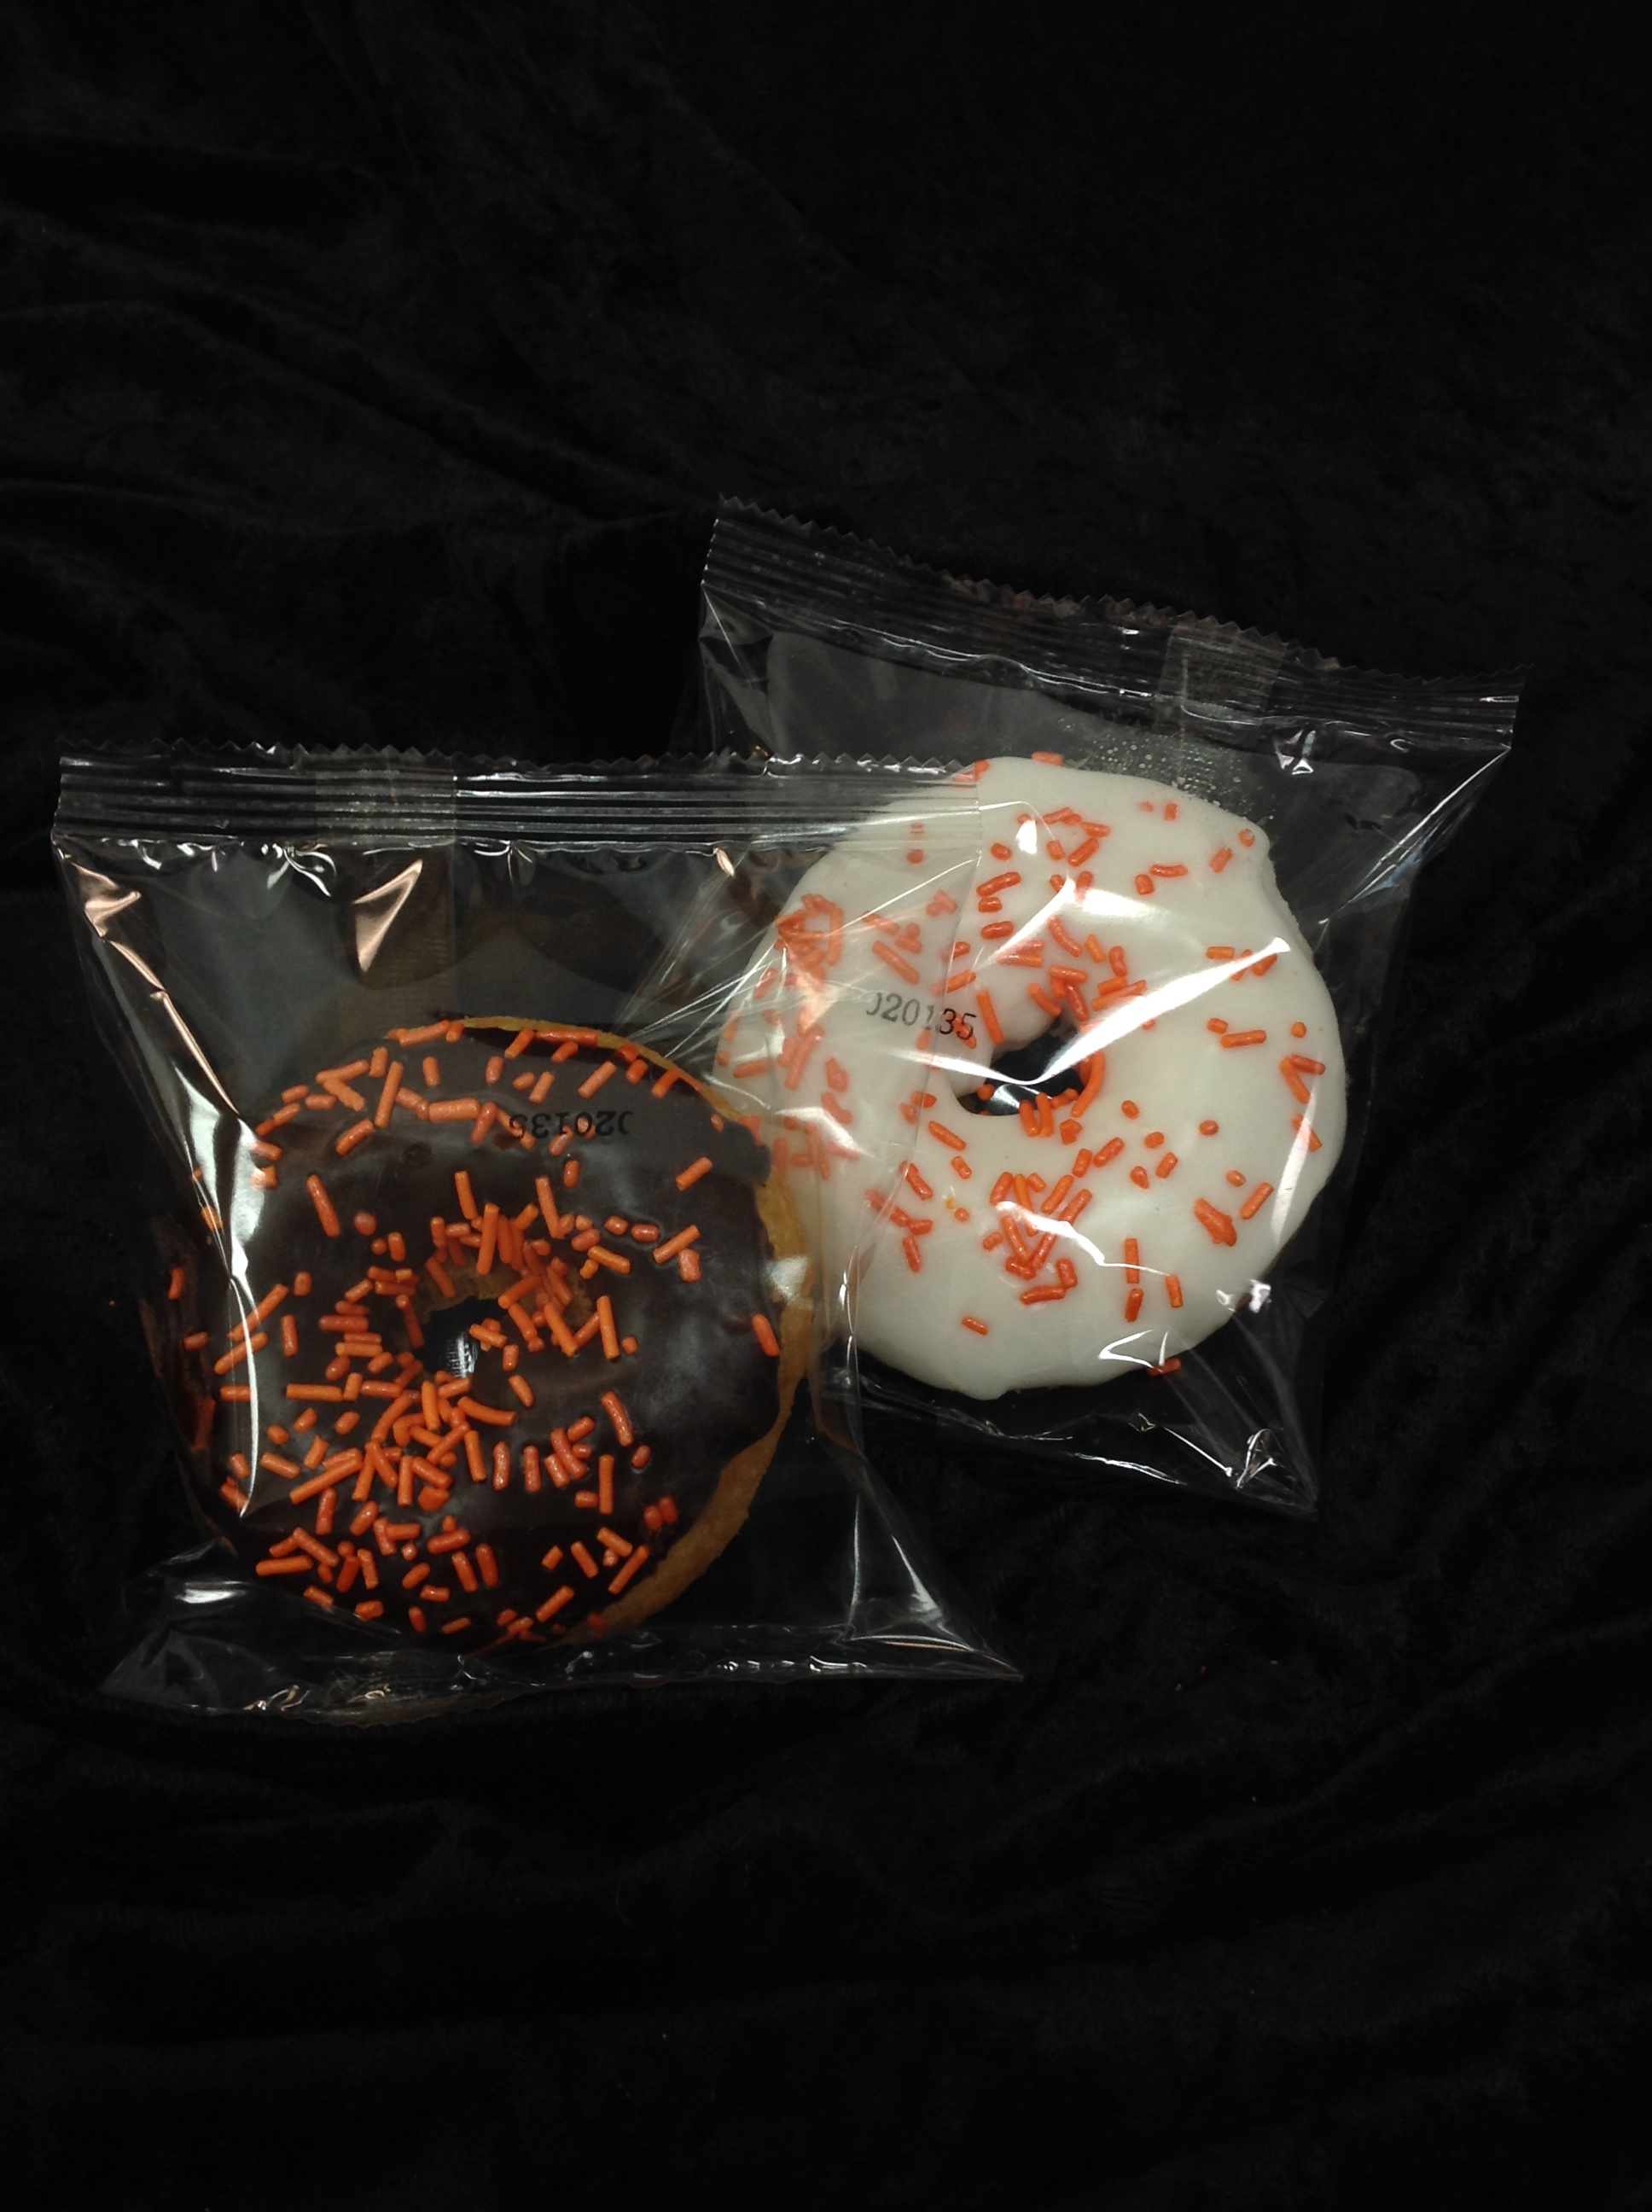 Individually Wrapped Donuts w/ School Colors